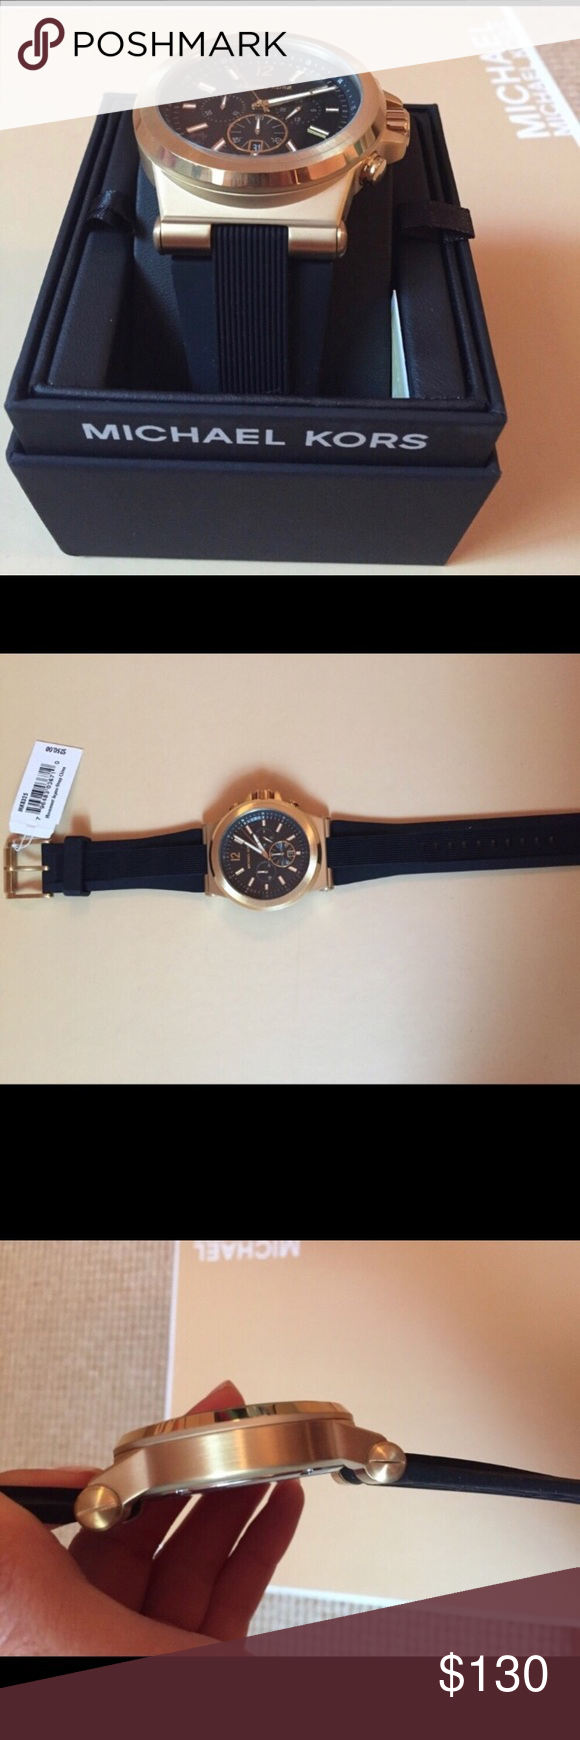 4913bd1c61a5 Michael Kors Dylan watch Michael Kors MK8325 Dylan silicon watch. It has a  48mm stainless steel case and a 22 mm silicone band. Brand new tags  attached